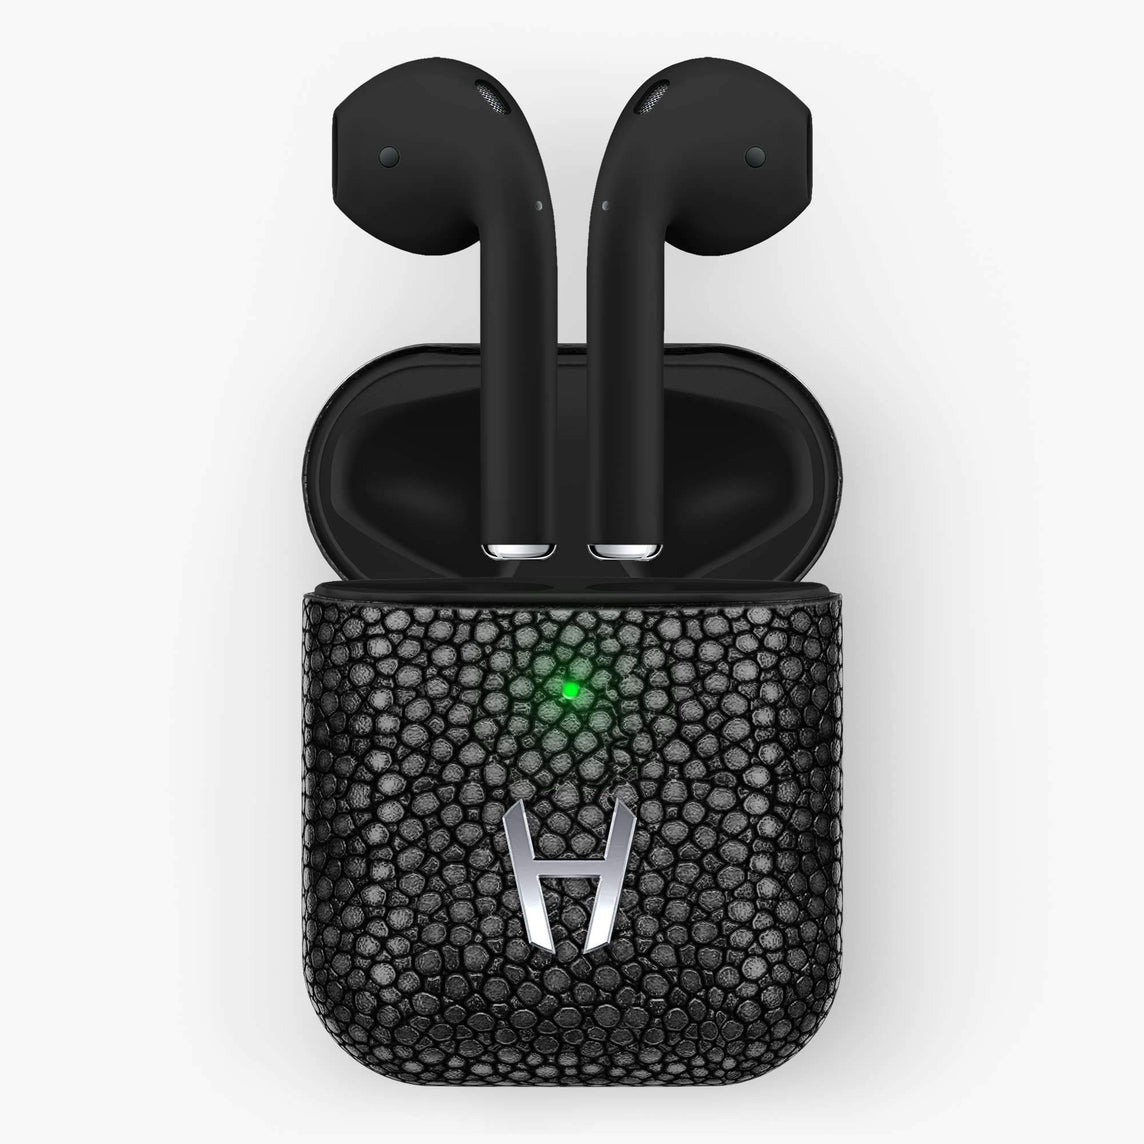 Hadoro Airpods Stingray with Wireless Charging Case | Black - Stainless Steel